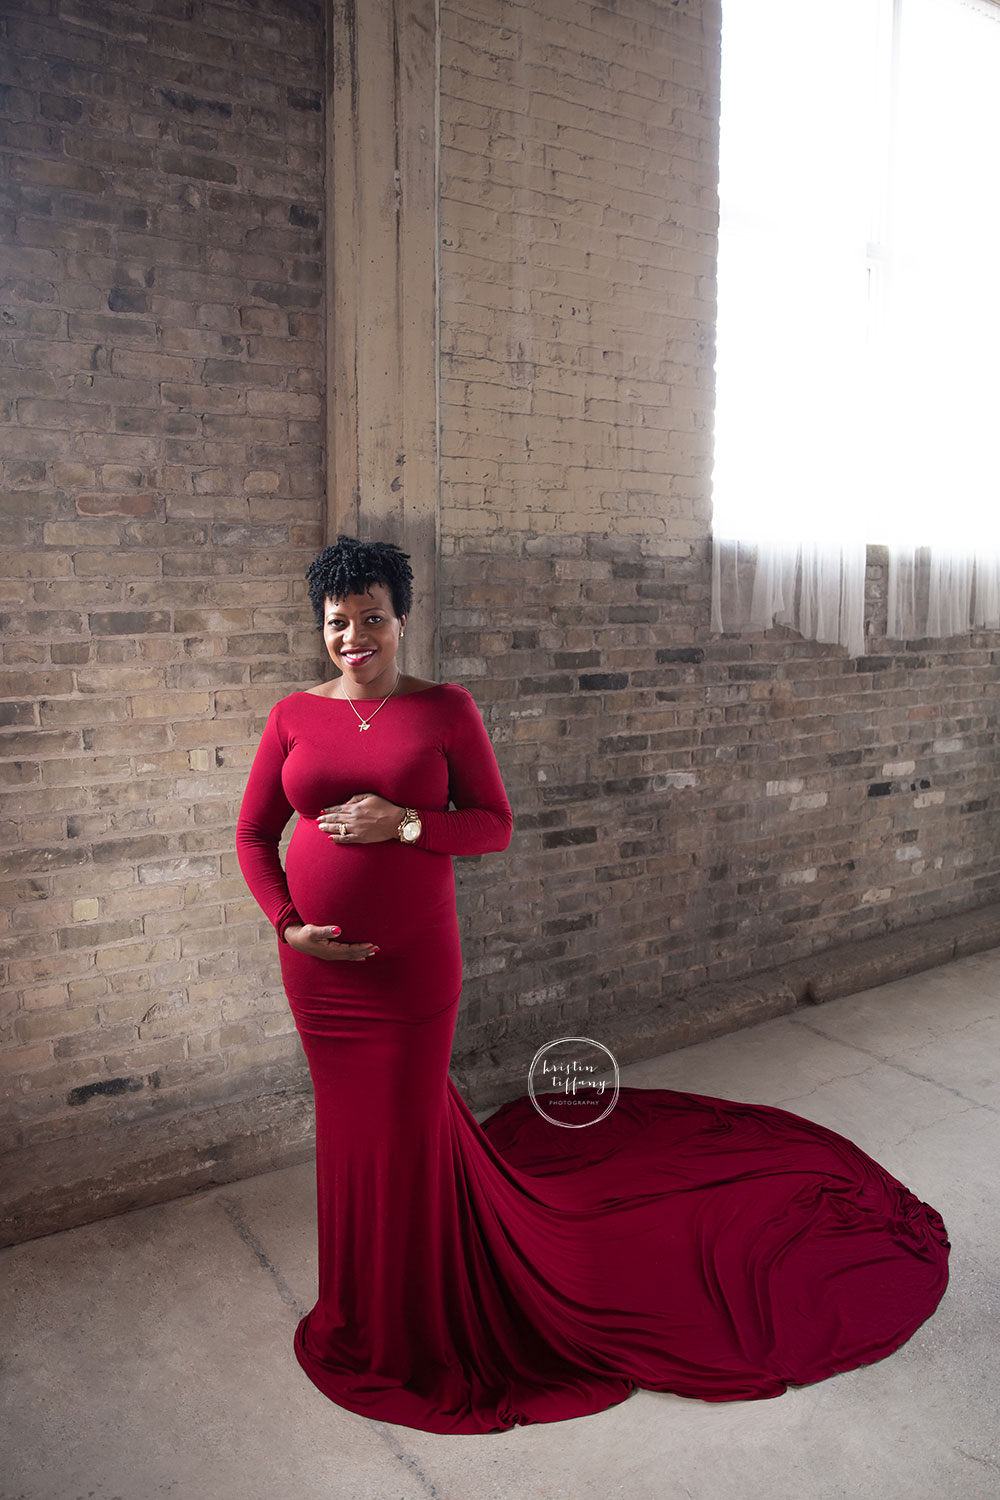 a maternity photo of a woman in a red gown